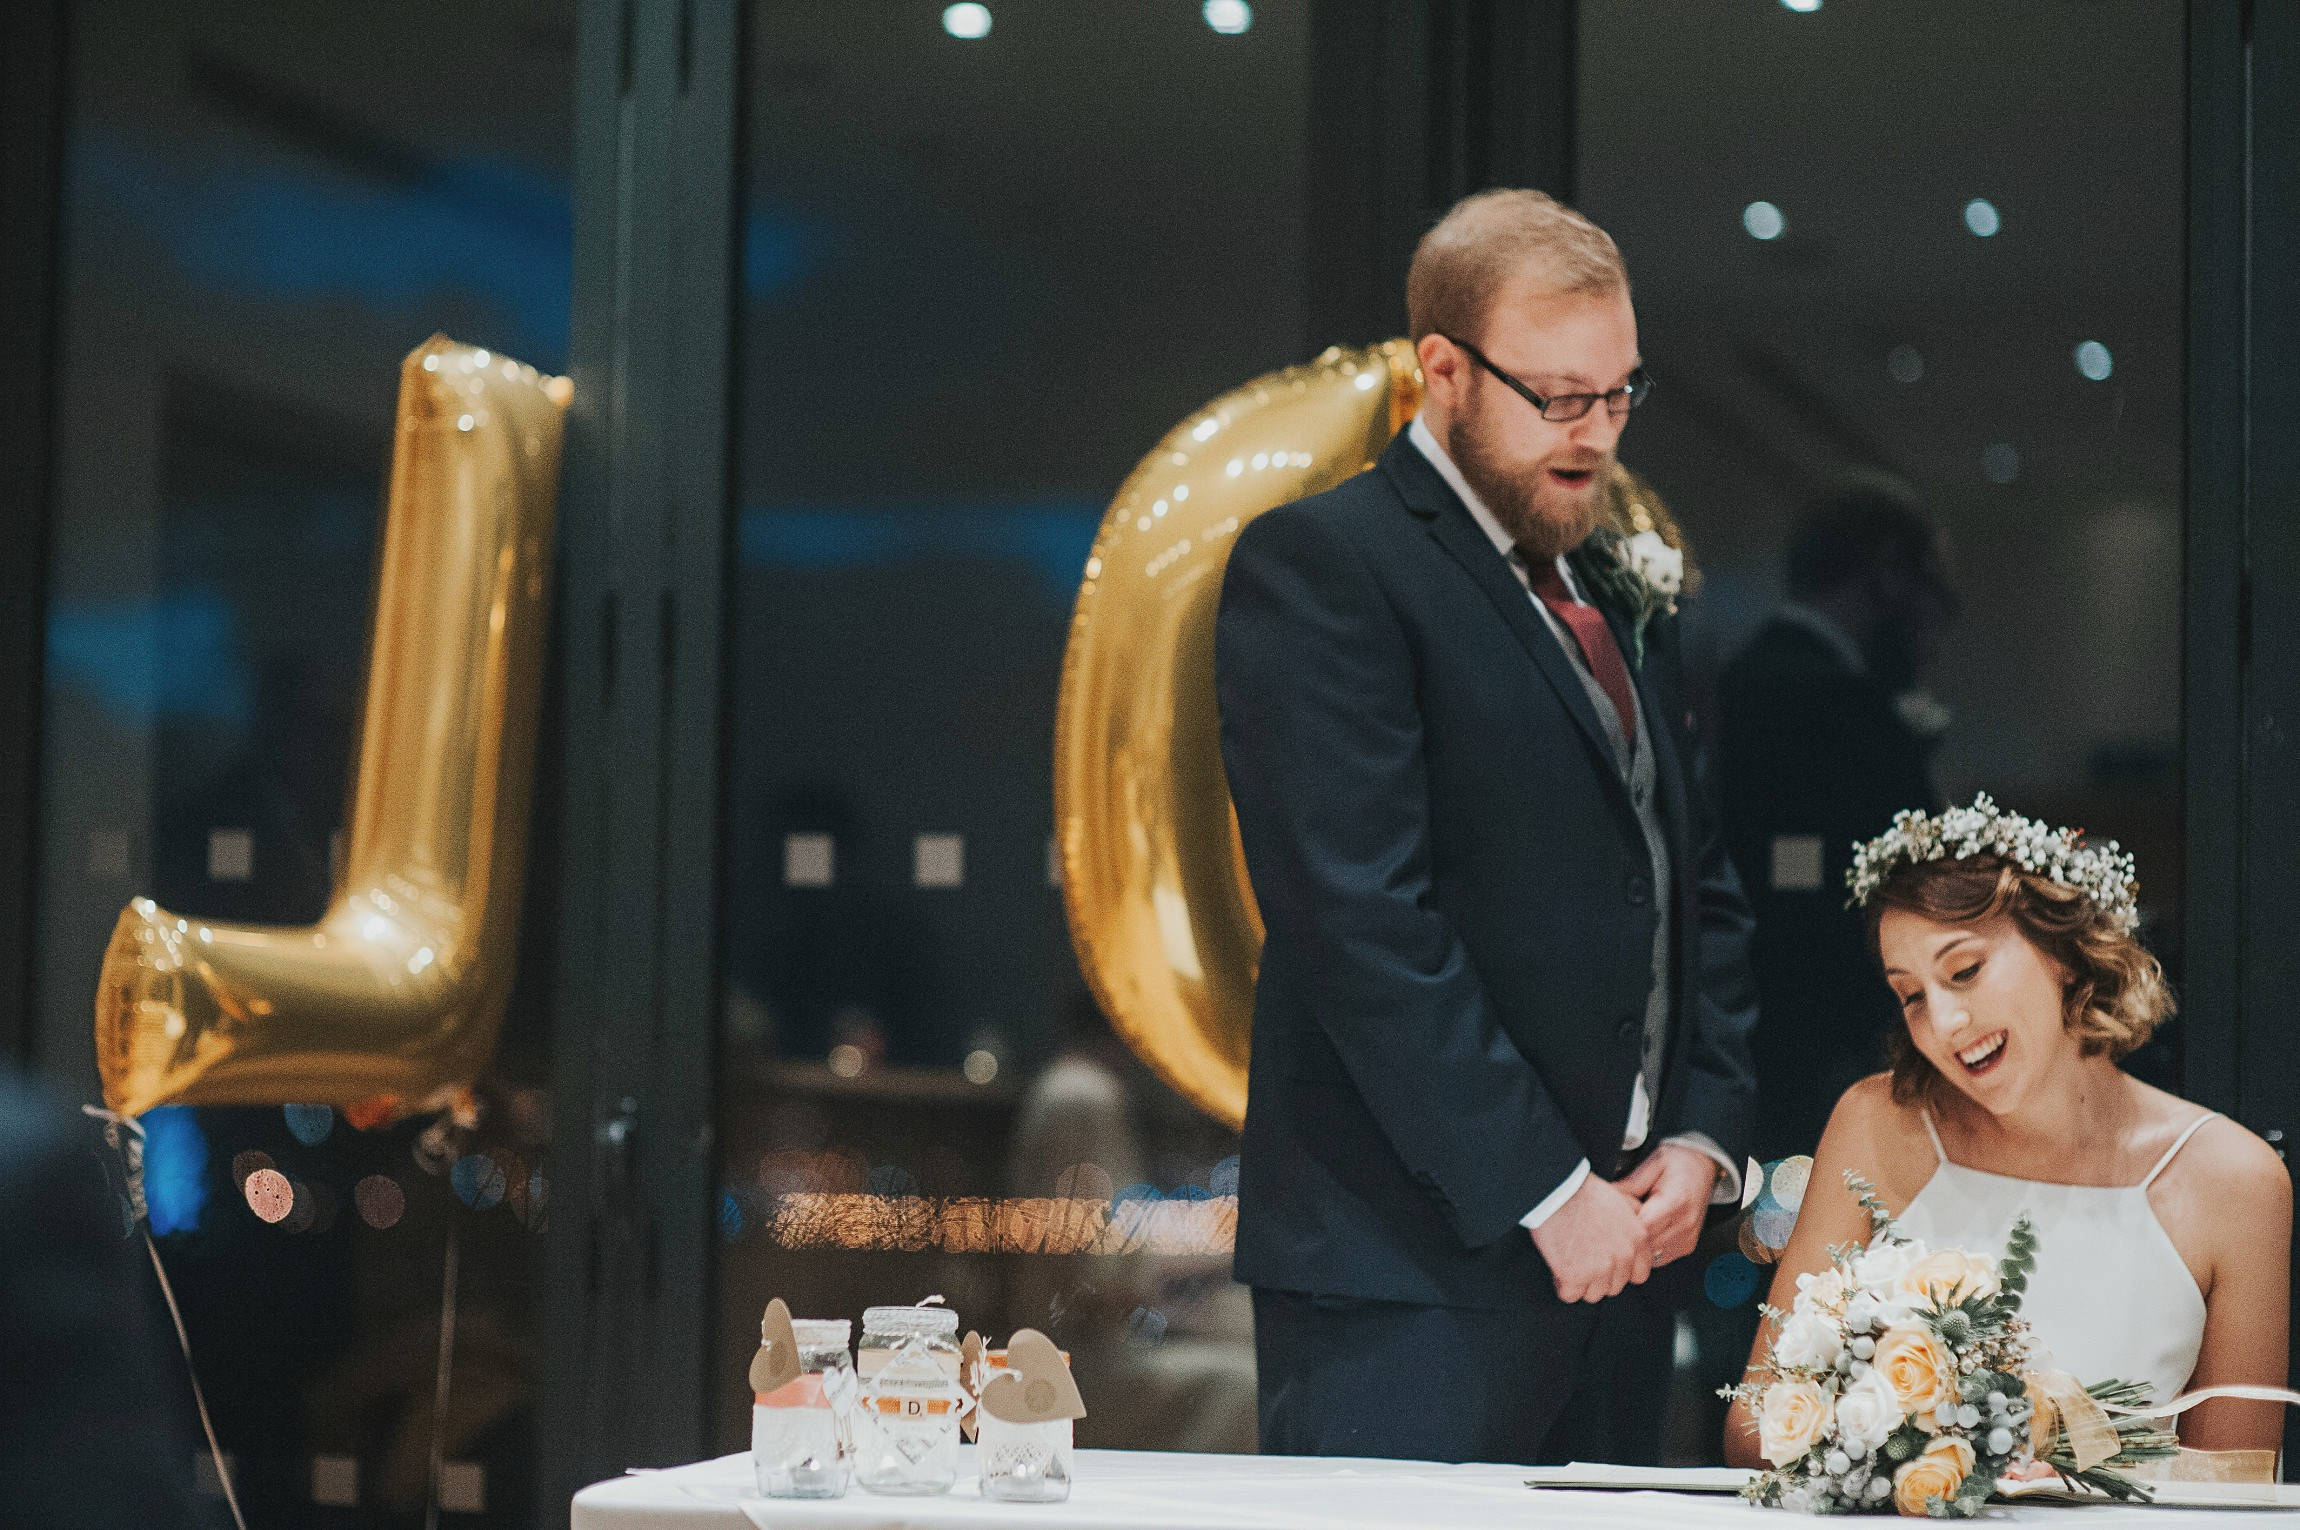 alternative and creative wedding photography from Brighton based photographer